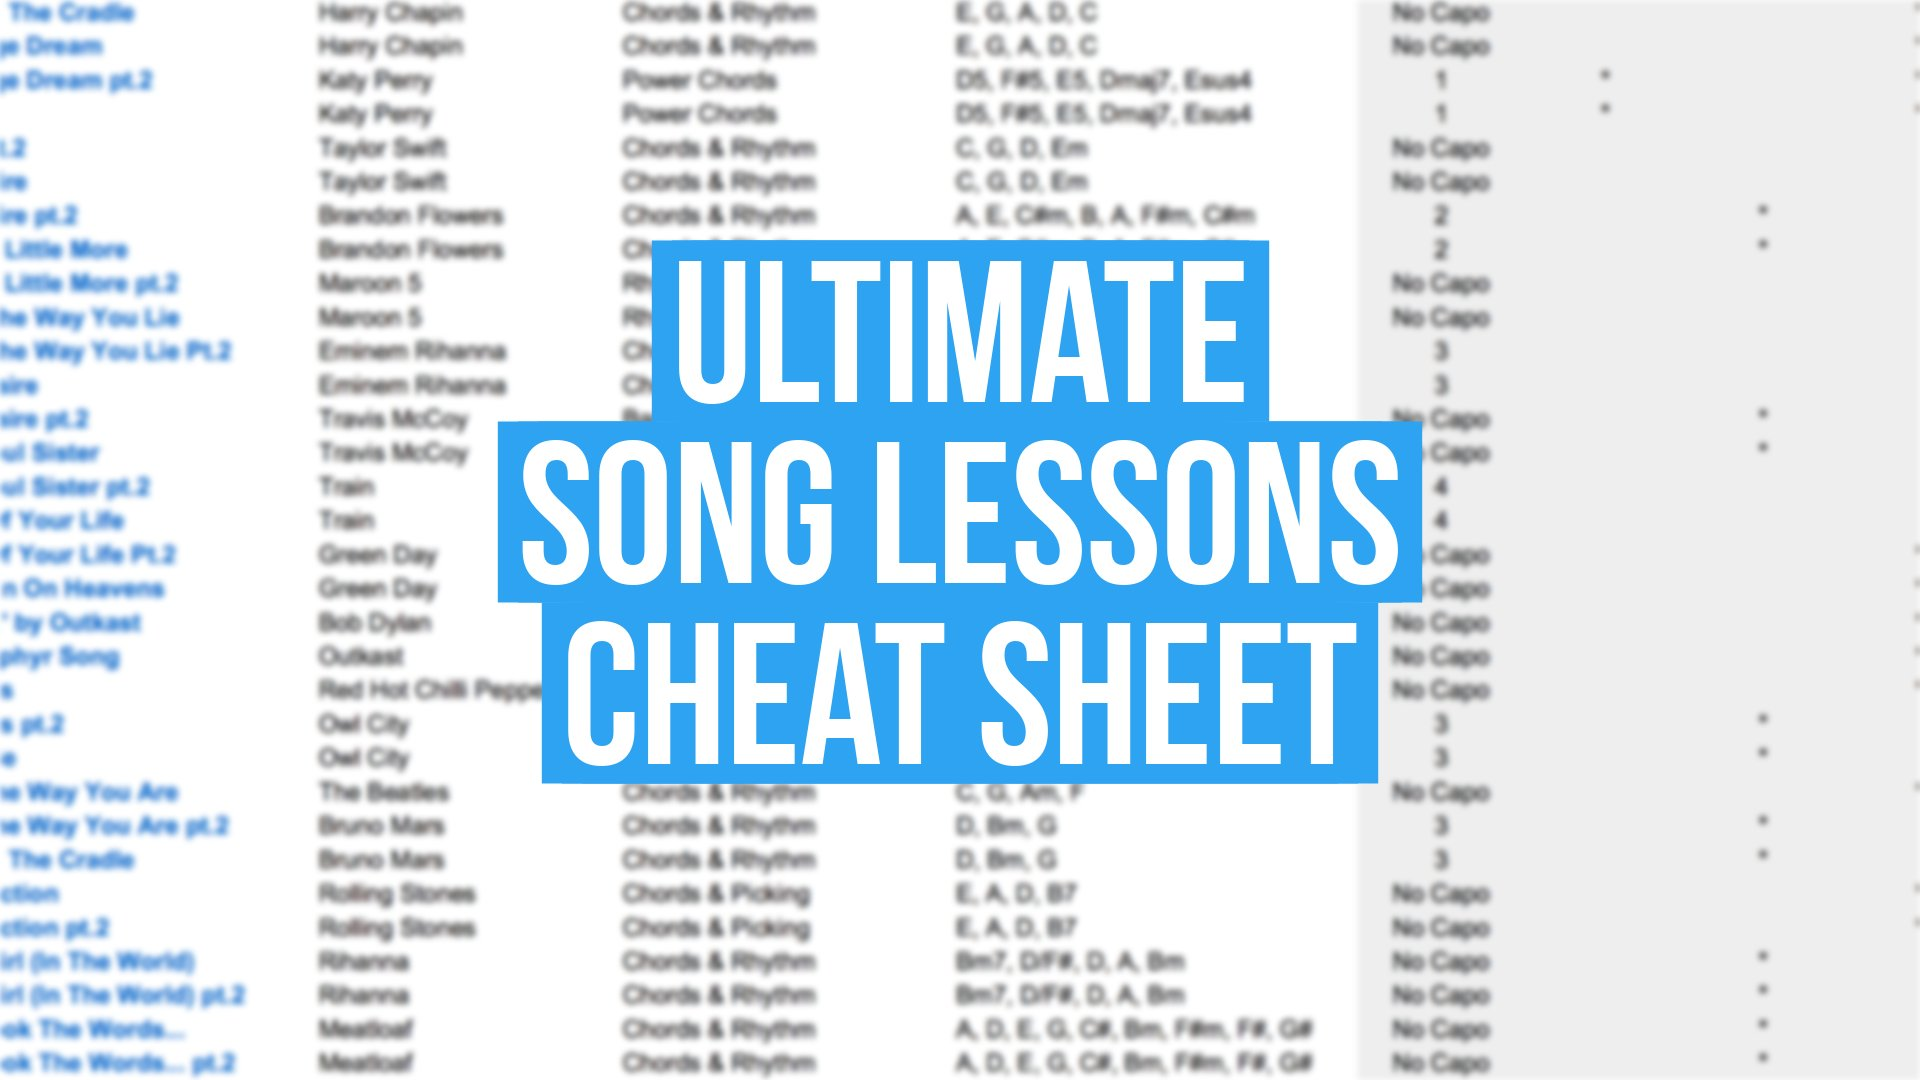 Ultimate Song Lessons Cheat Sheet